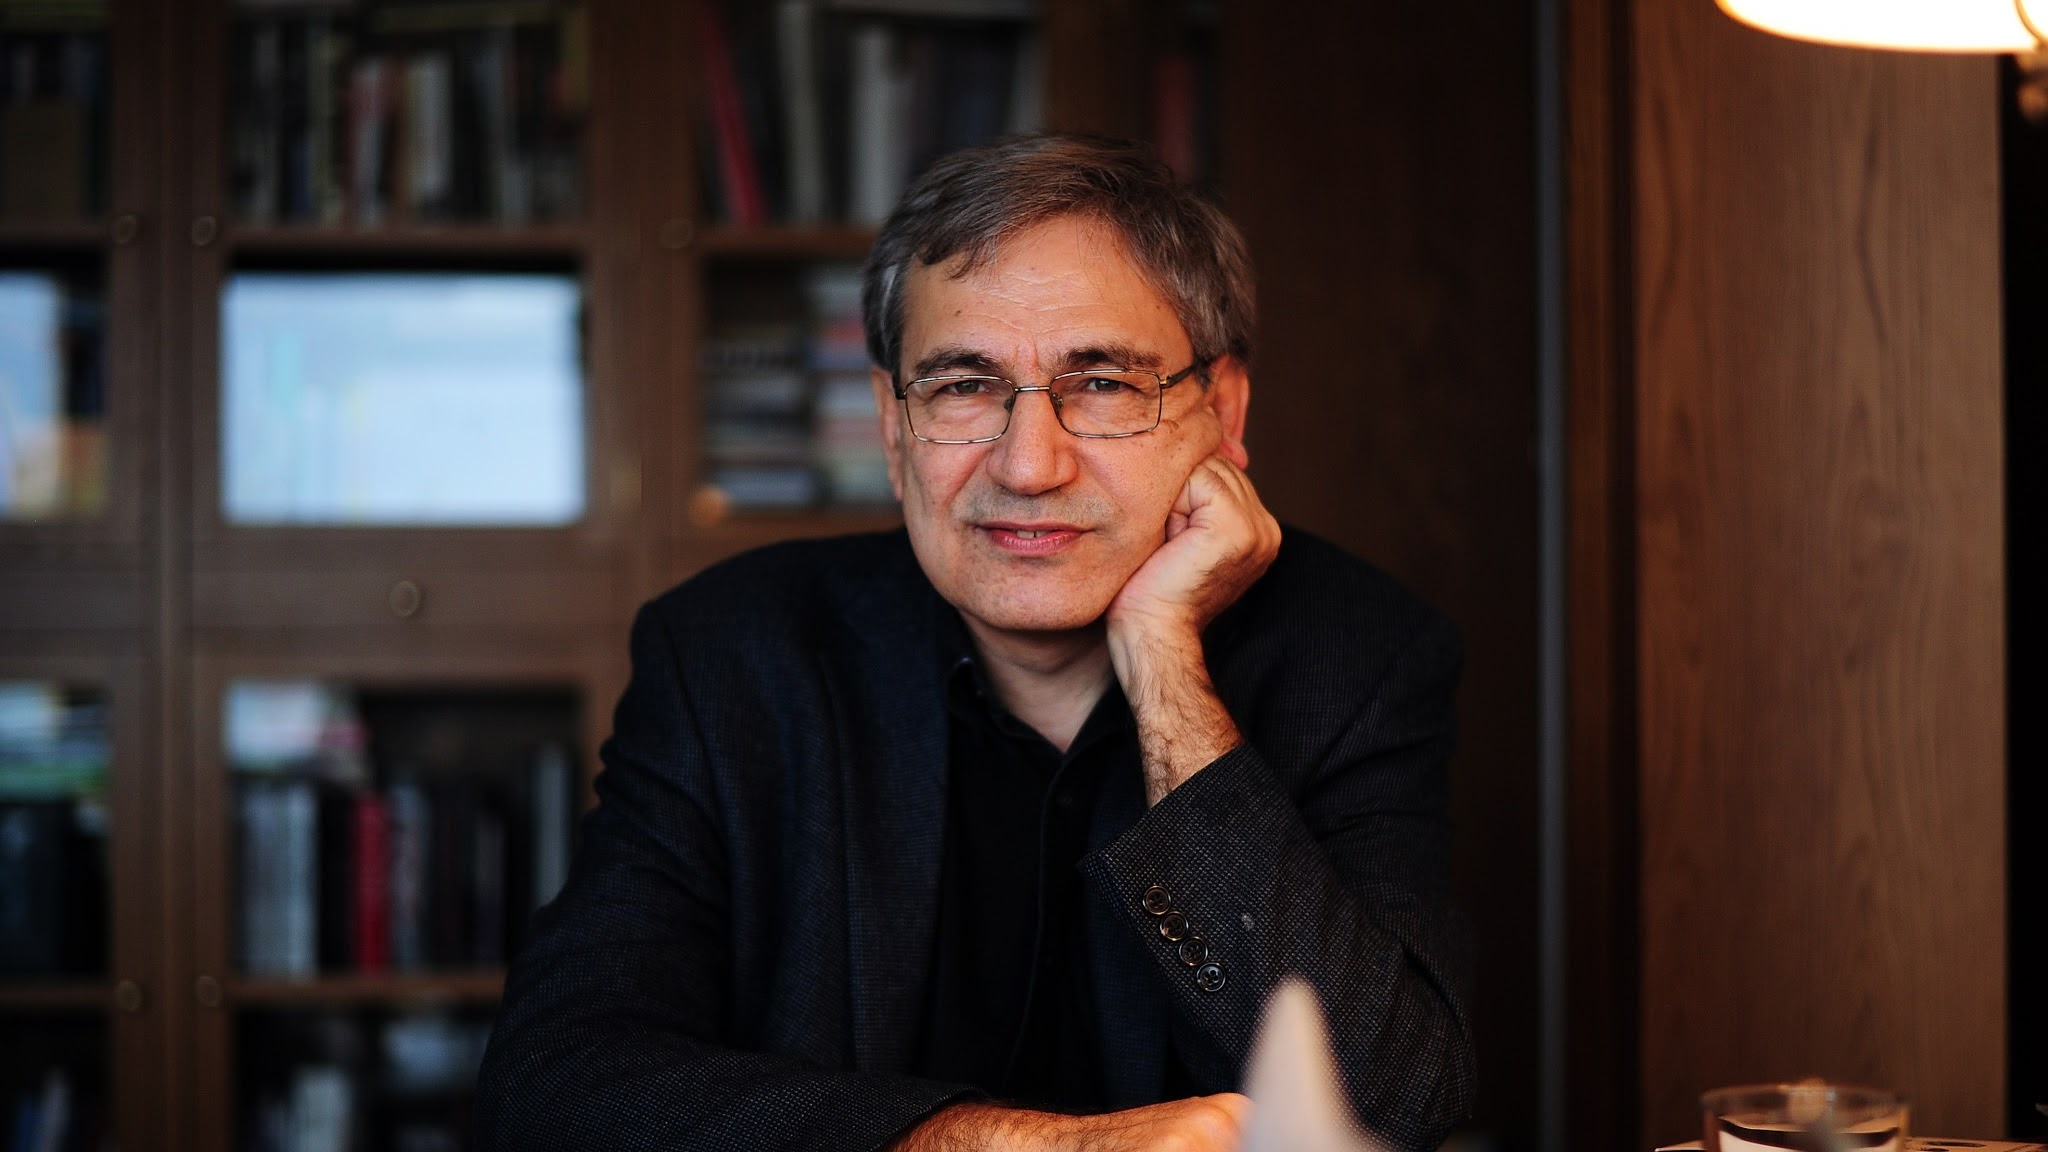 orhan pamuk On a windswept afternoon in mid-december, the writer orhan pamuk stood in a leafy square around the corner from istanbul university, absorbed in a 40-year-old memory he walked past parked motorcycles, sturdy oaks and a stone fountain, browsing through secondhand books in front of cluttered shops.